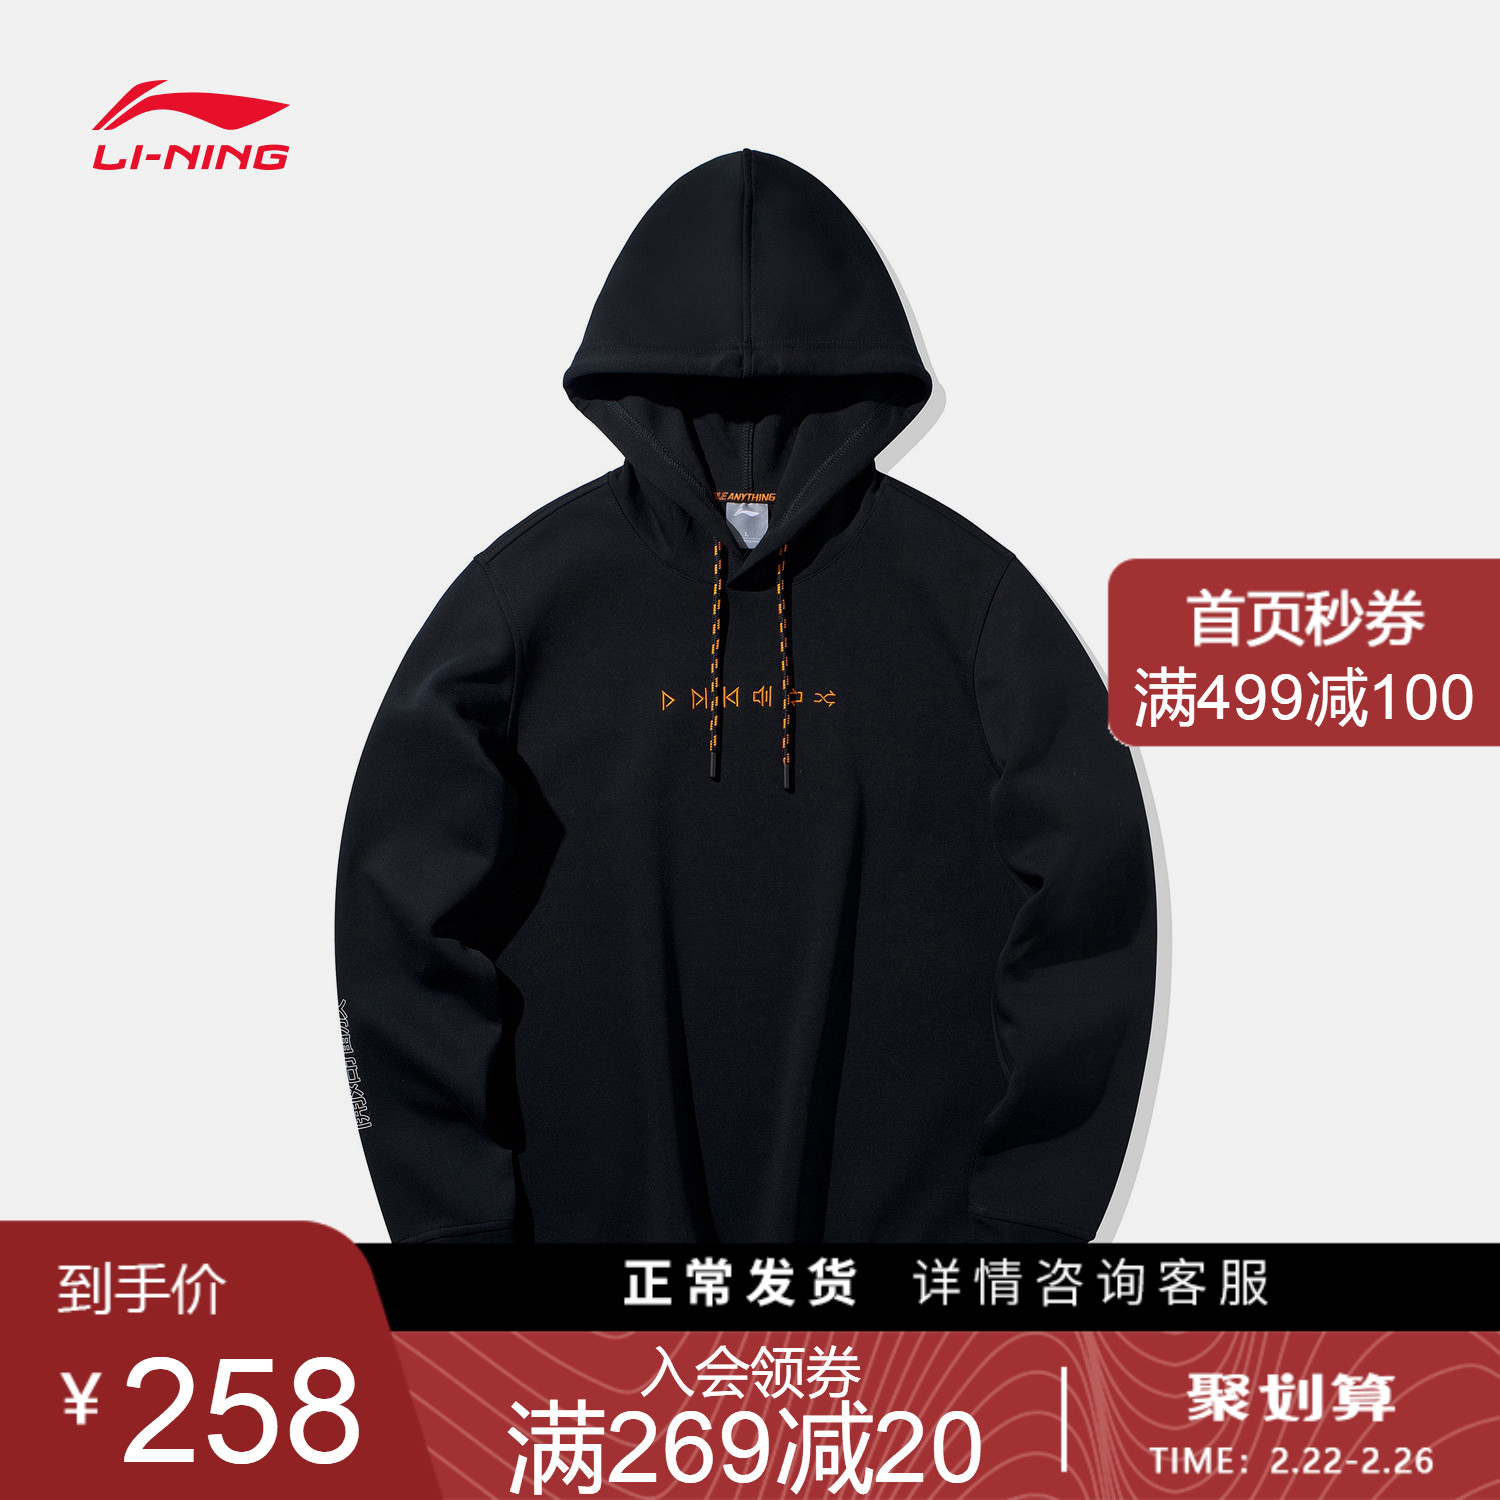 Li Ning sweater men's new 2020 long sleeve hooded spring men's top knitted sportswear